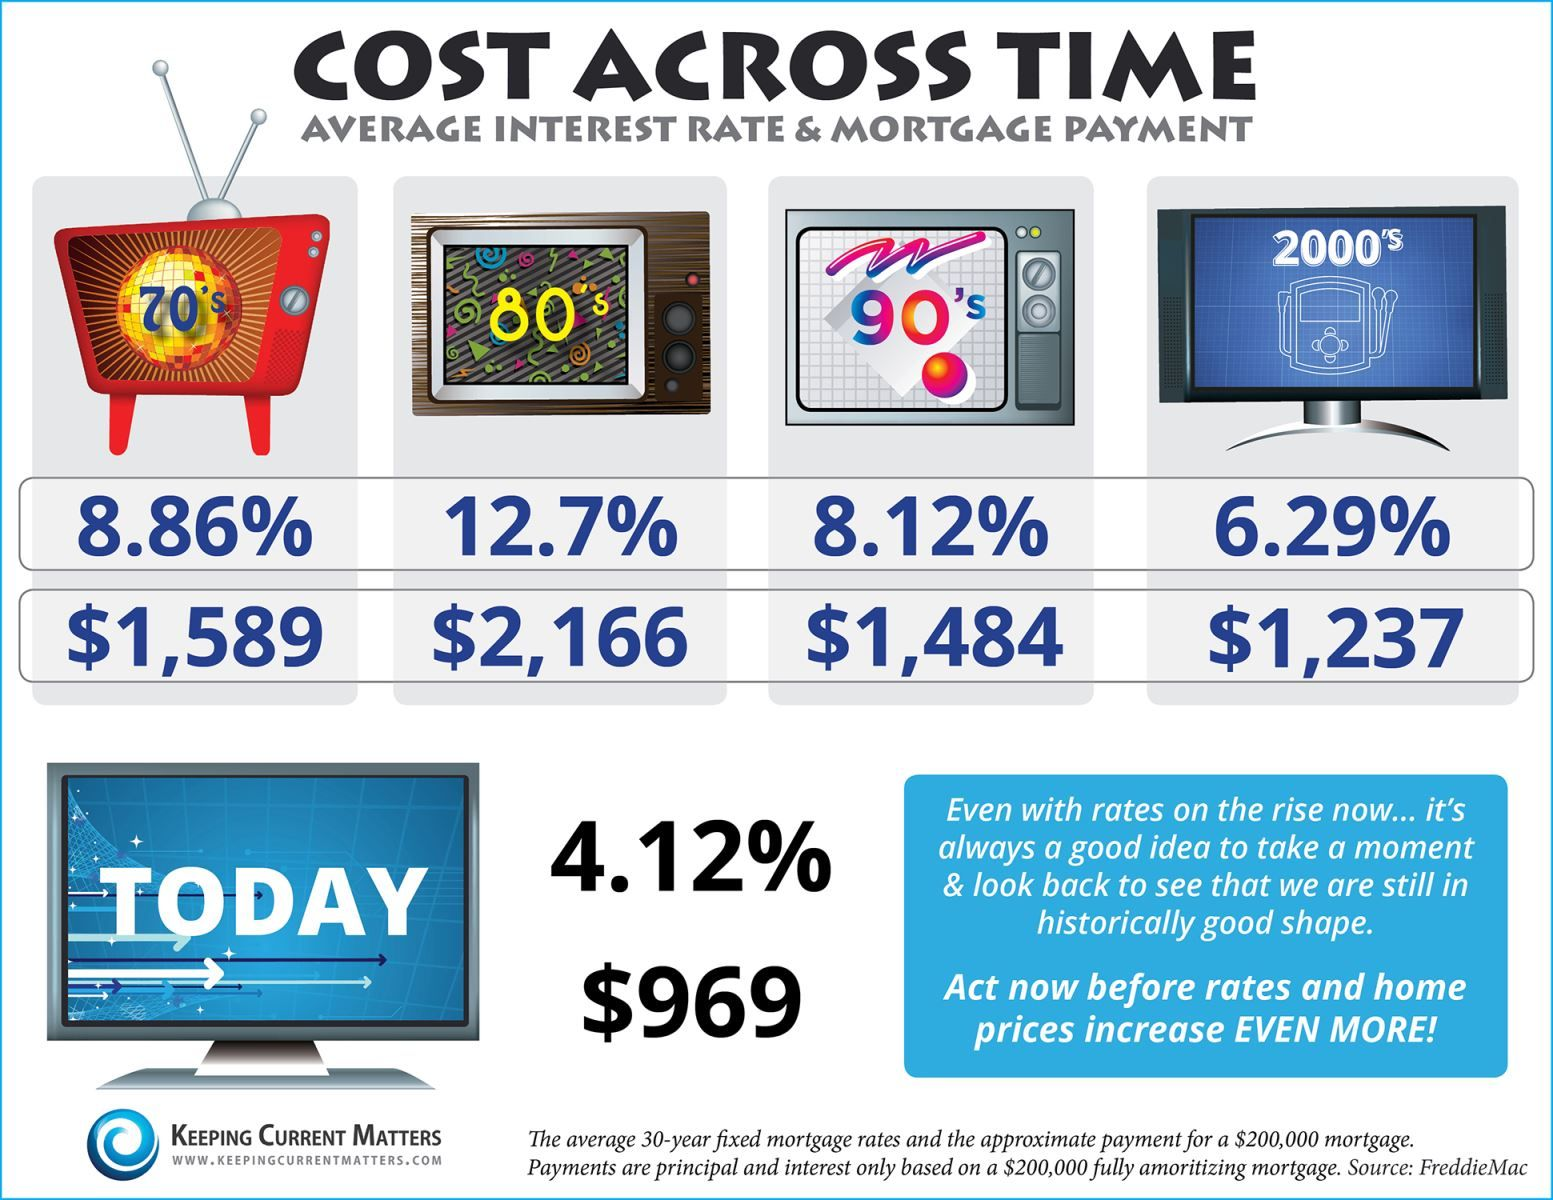 Cost Across Time Average Interest Rate Mortgage Payment